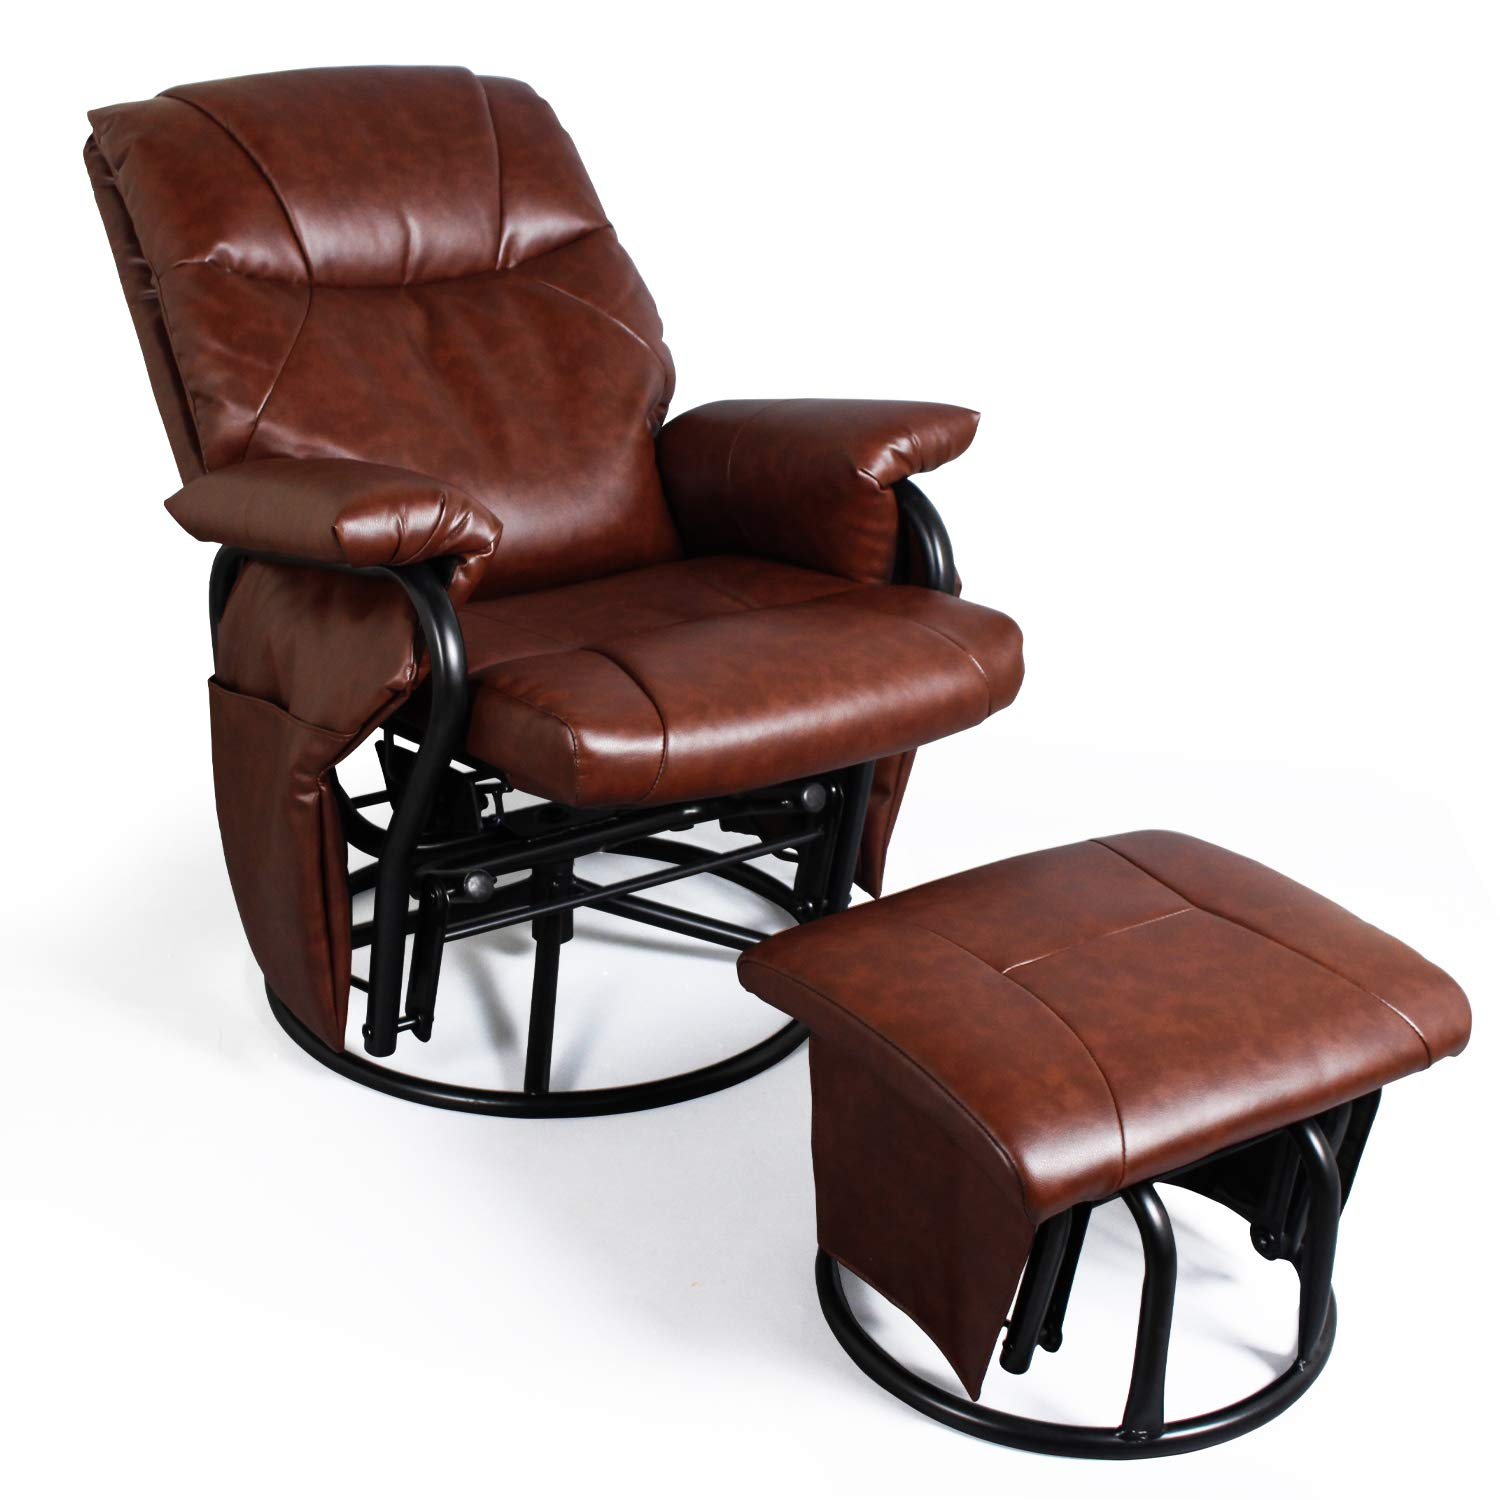 Recliner Chair with Ottoman Living Room Chairs Faux Leather Glider Chair 360 Degree Rotation Leisure and Relaxation Furniture (Red-Brown) by JIASTING